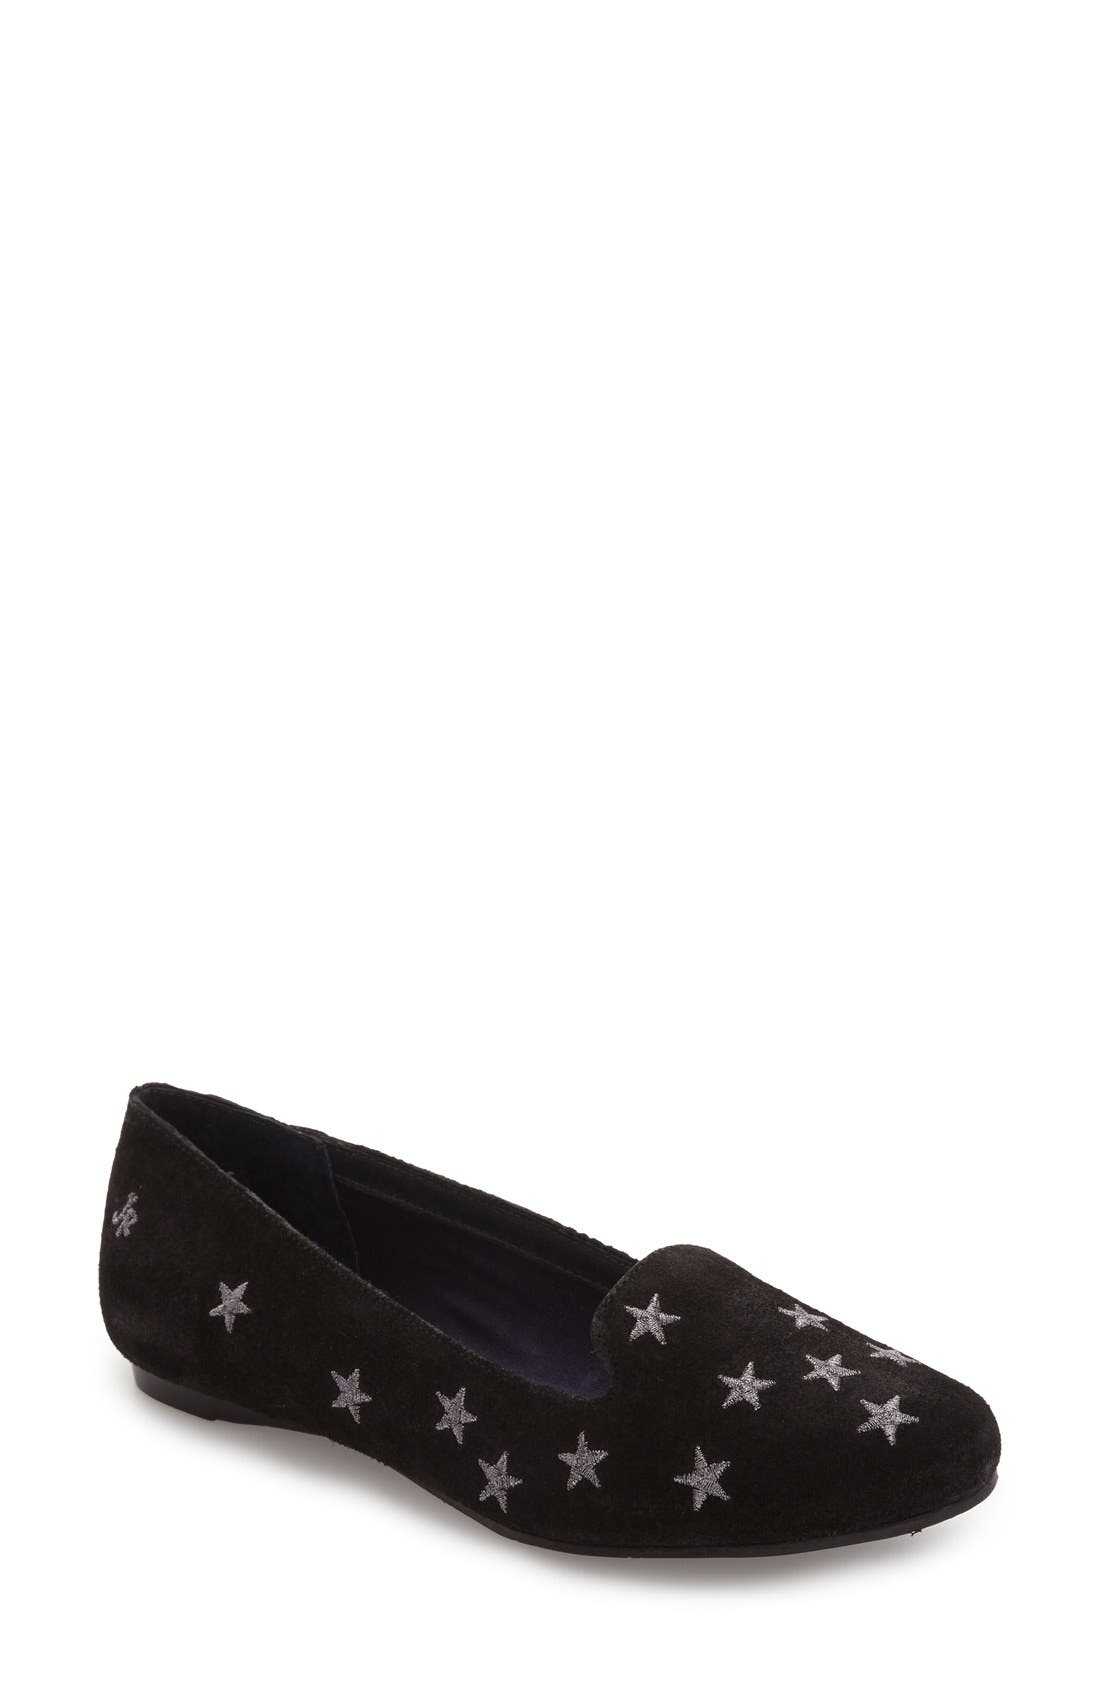 Starstuck Loafer,                         Main,                         color, Black Suede